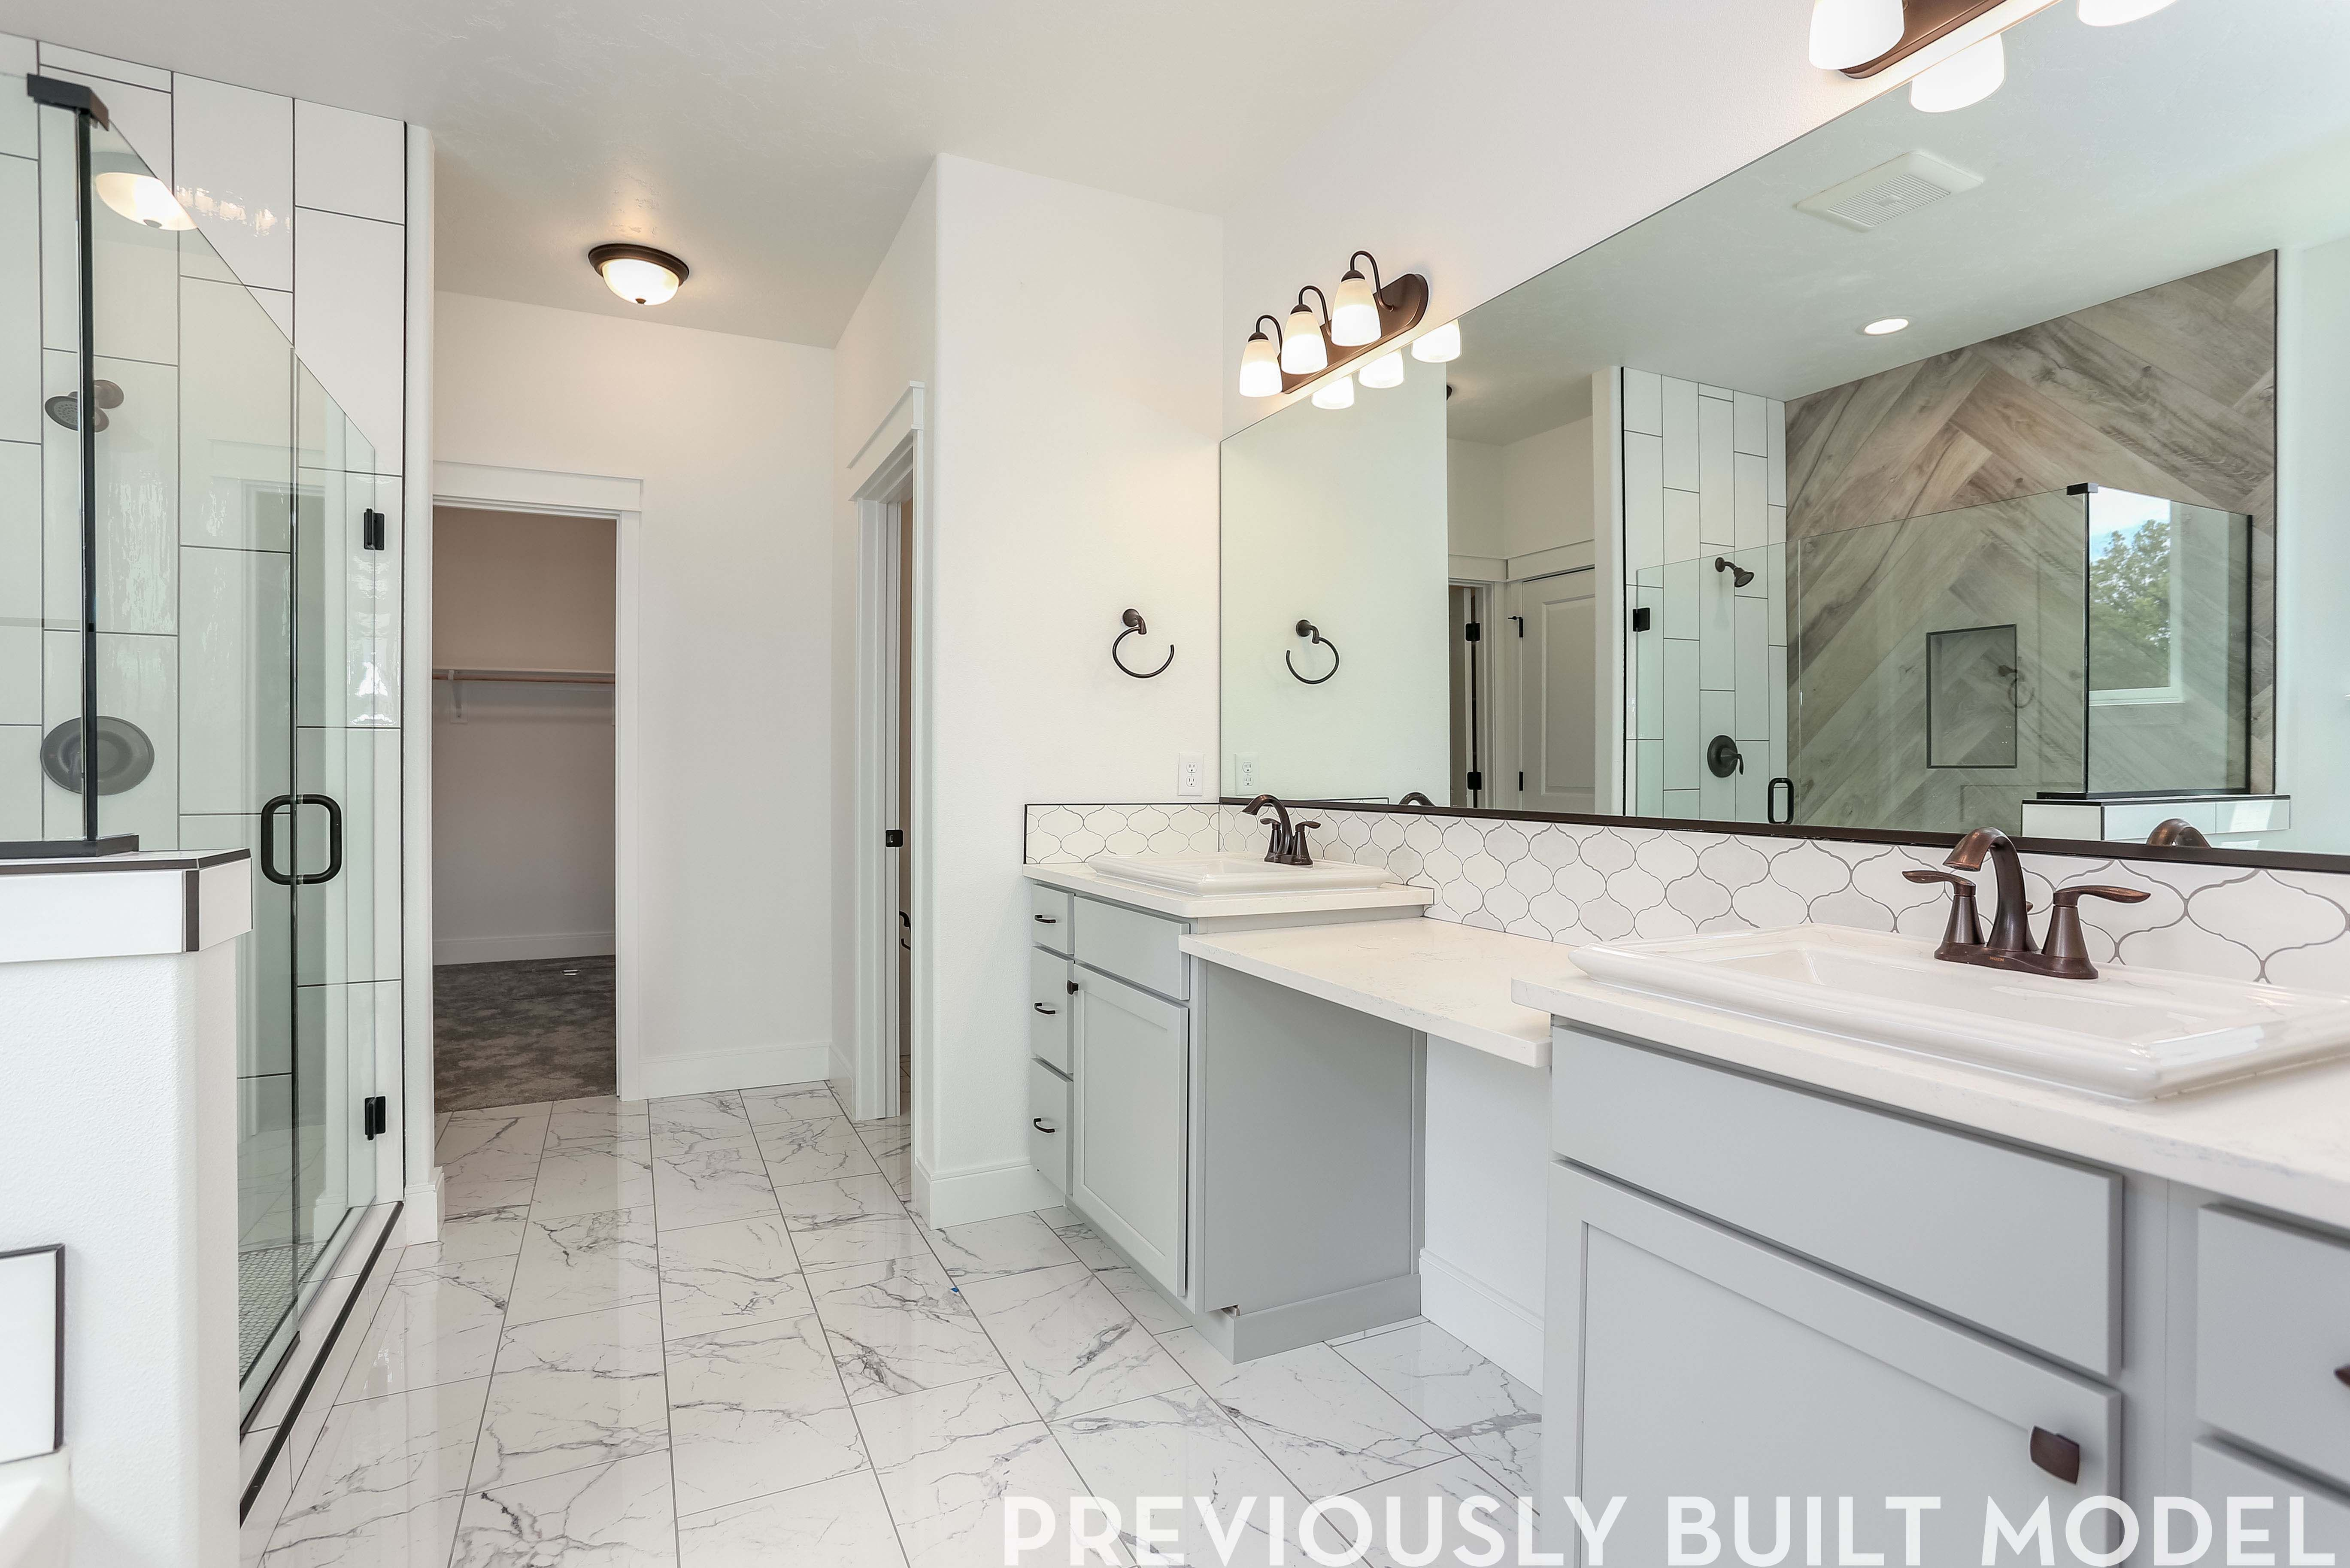 Bathroom featured in The Victoria Bonus By RYN Built Homes in Richland, WA